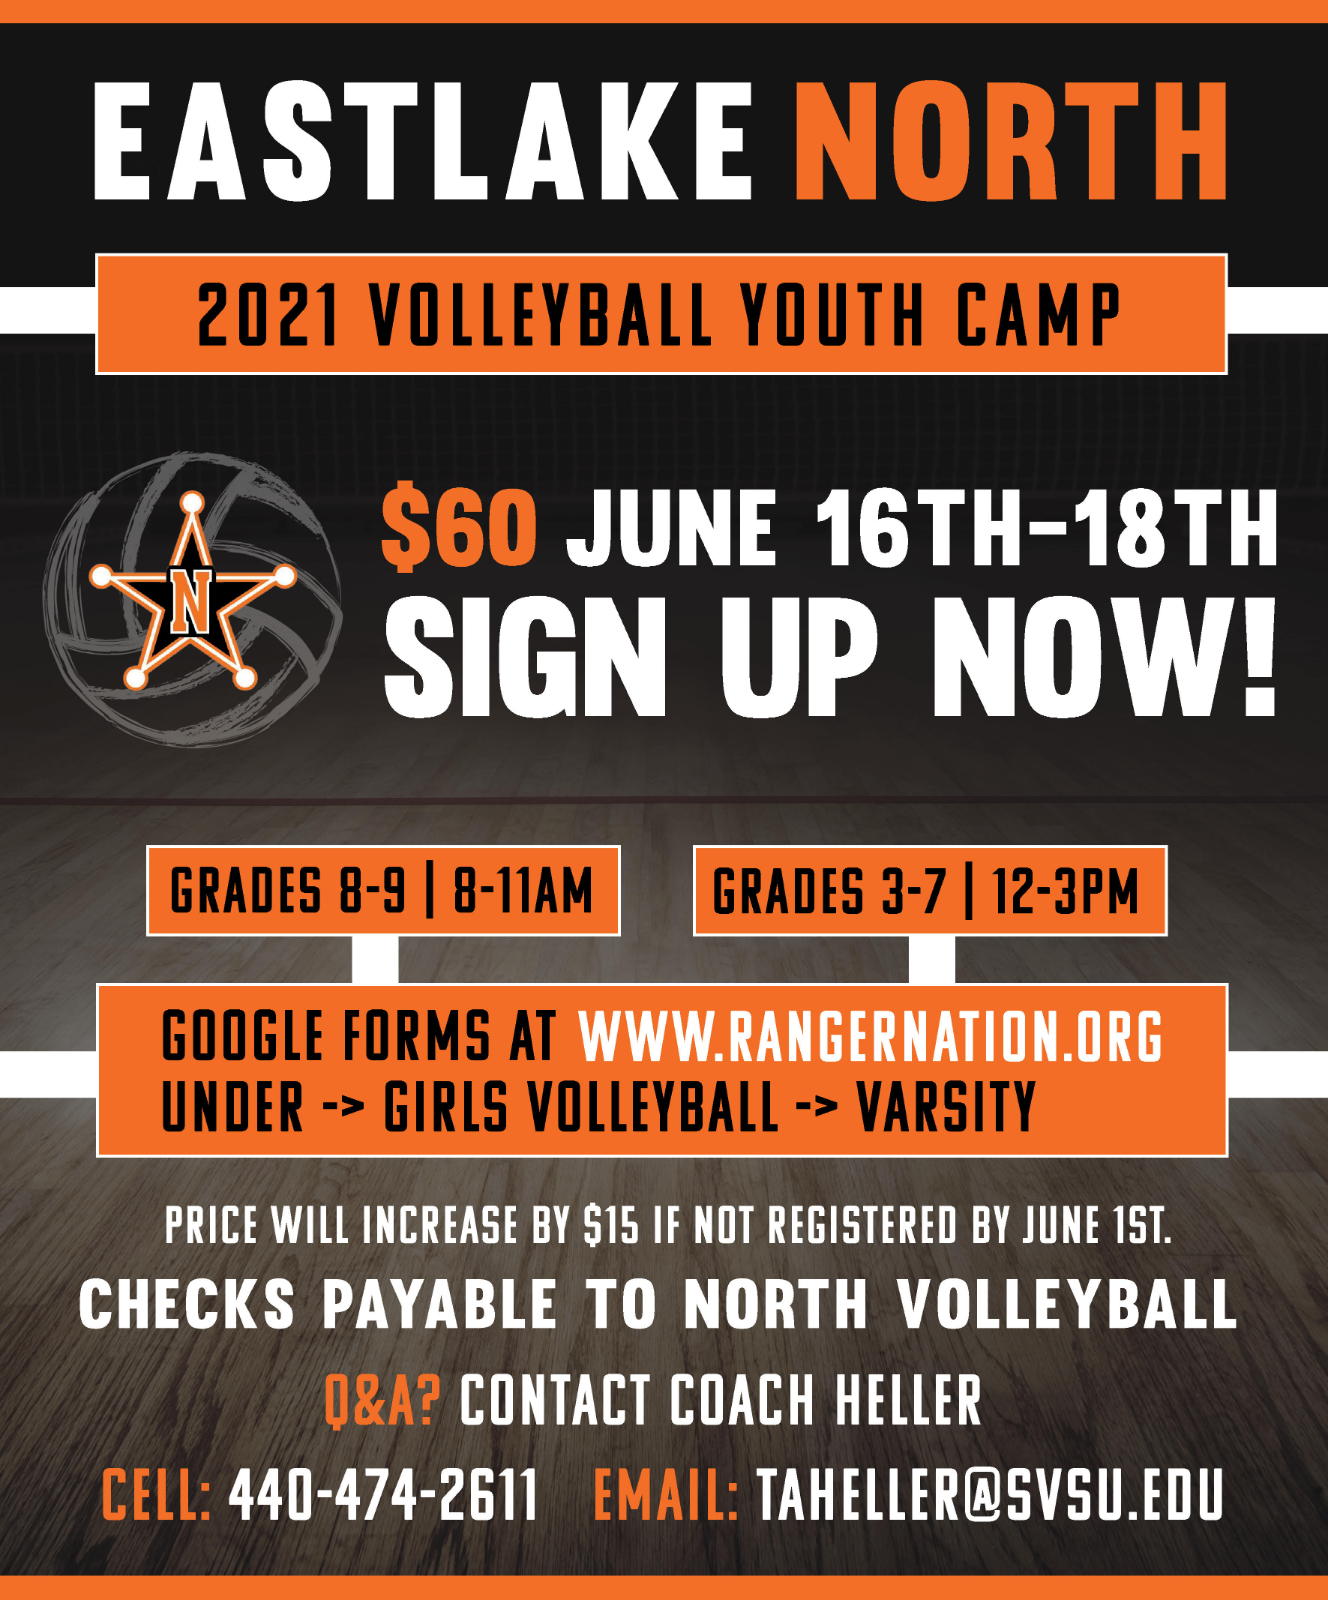 Eastlake North 2021 Volleyball Youth Camp-June 16-18